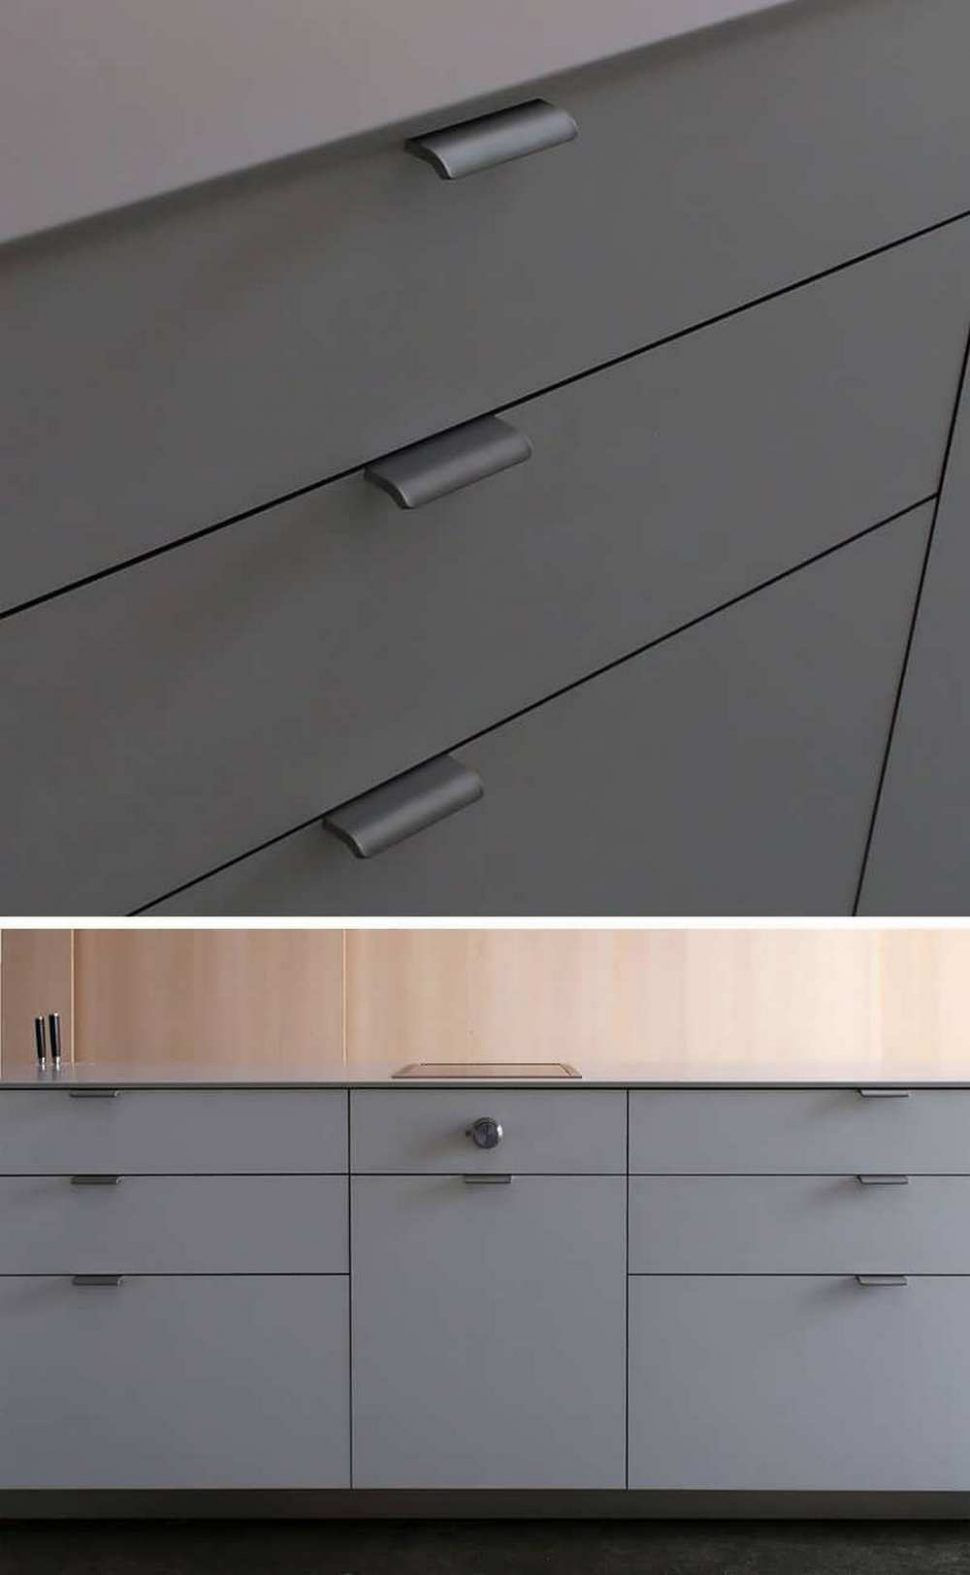 Kitchen Cabinet Door Handles Unique 29 Catchy Kitchen Cabinet Hardware Ideas 2019 A Guide for